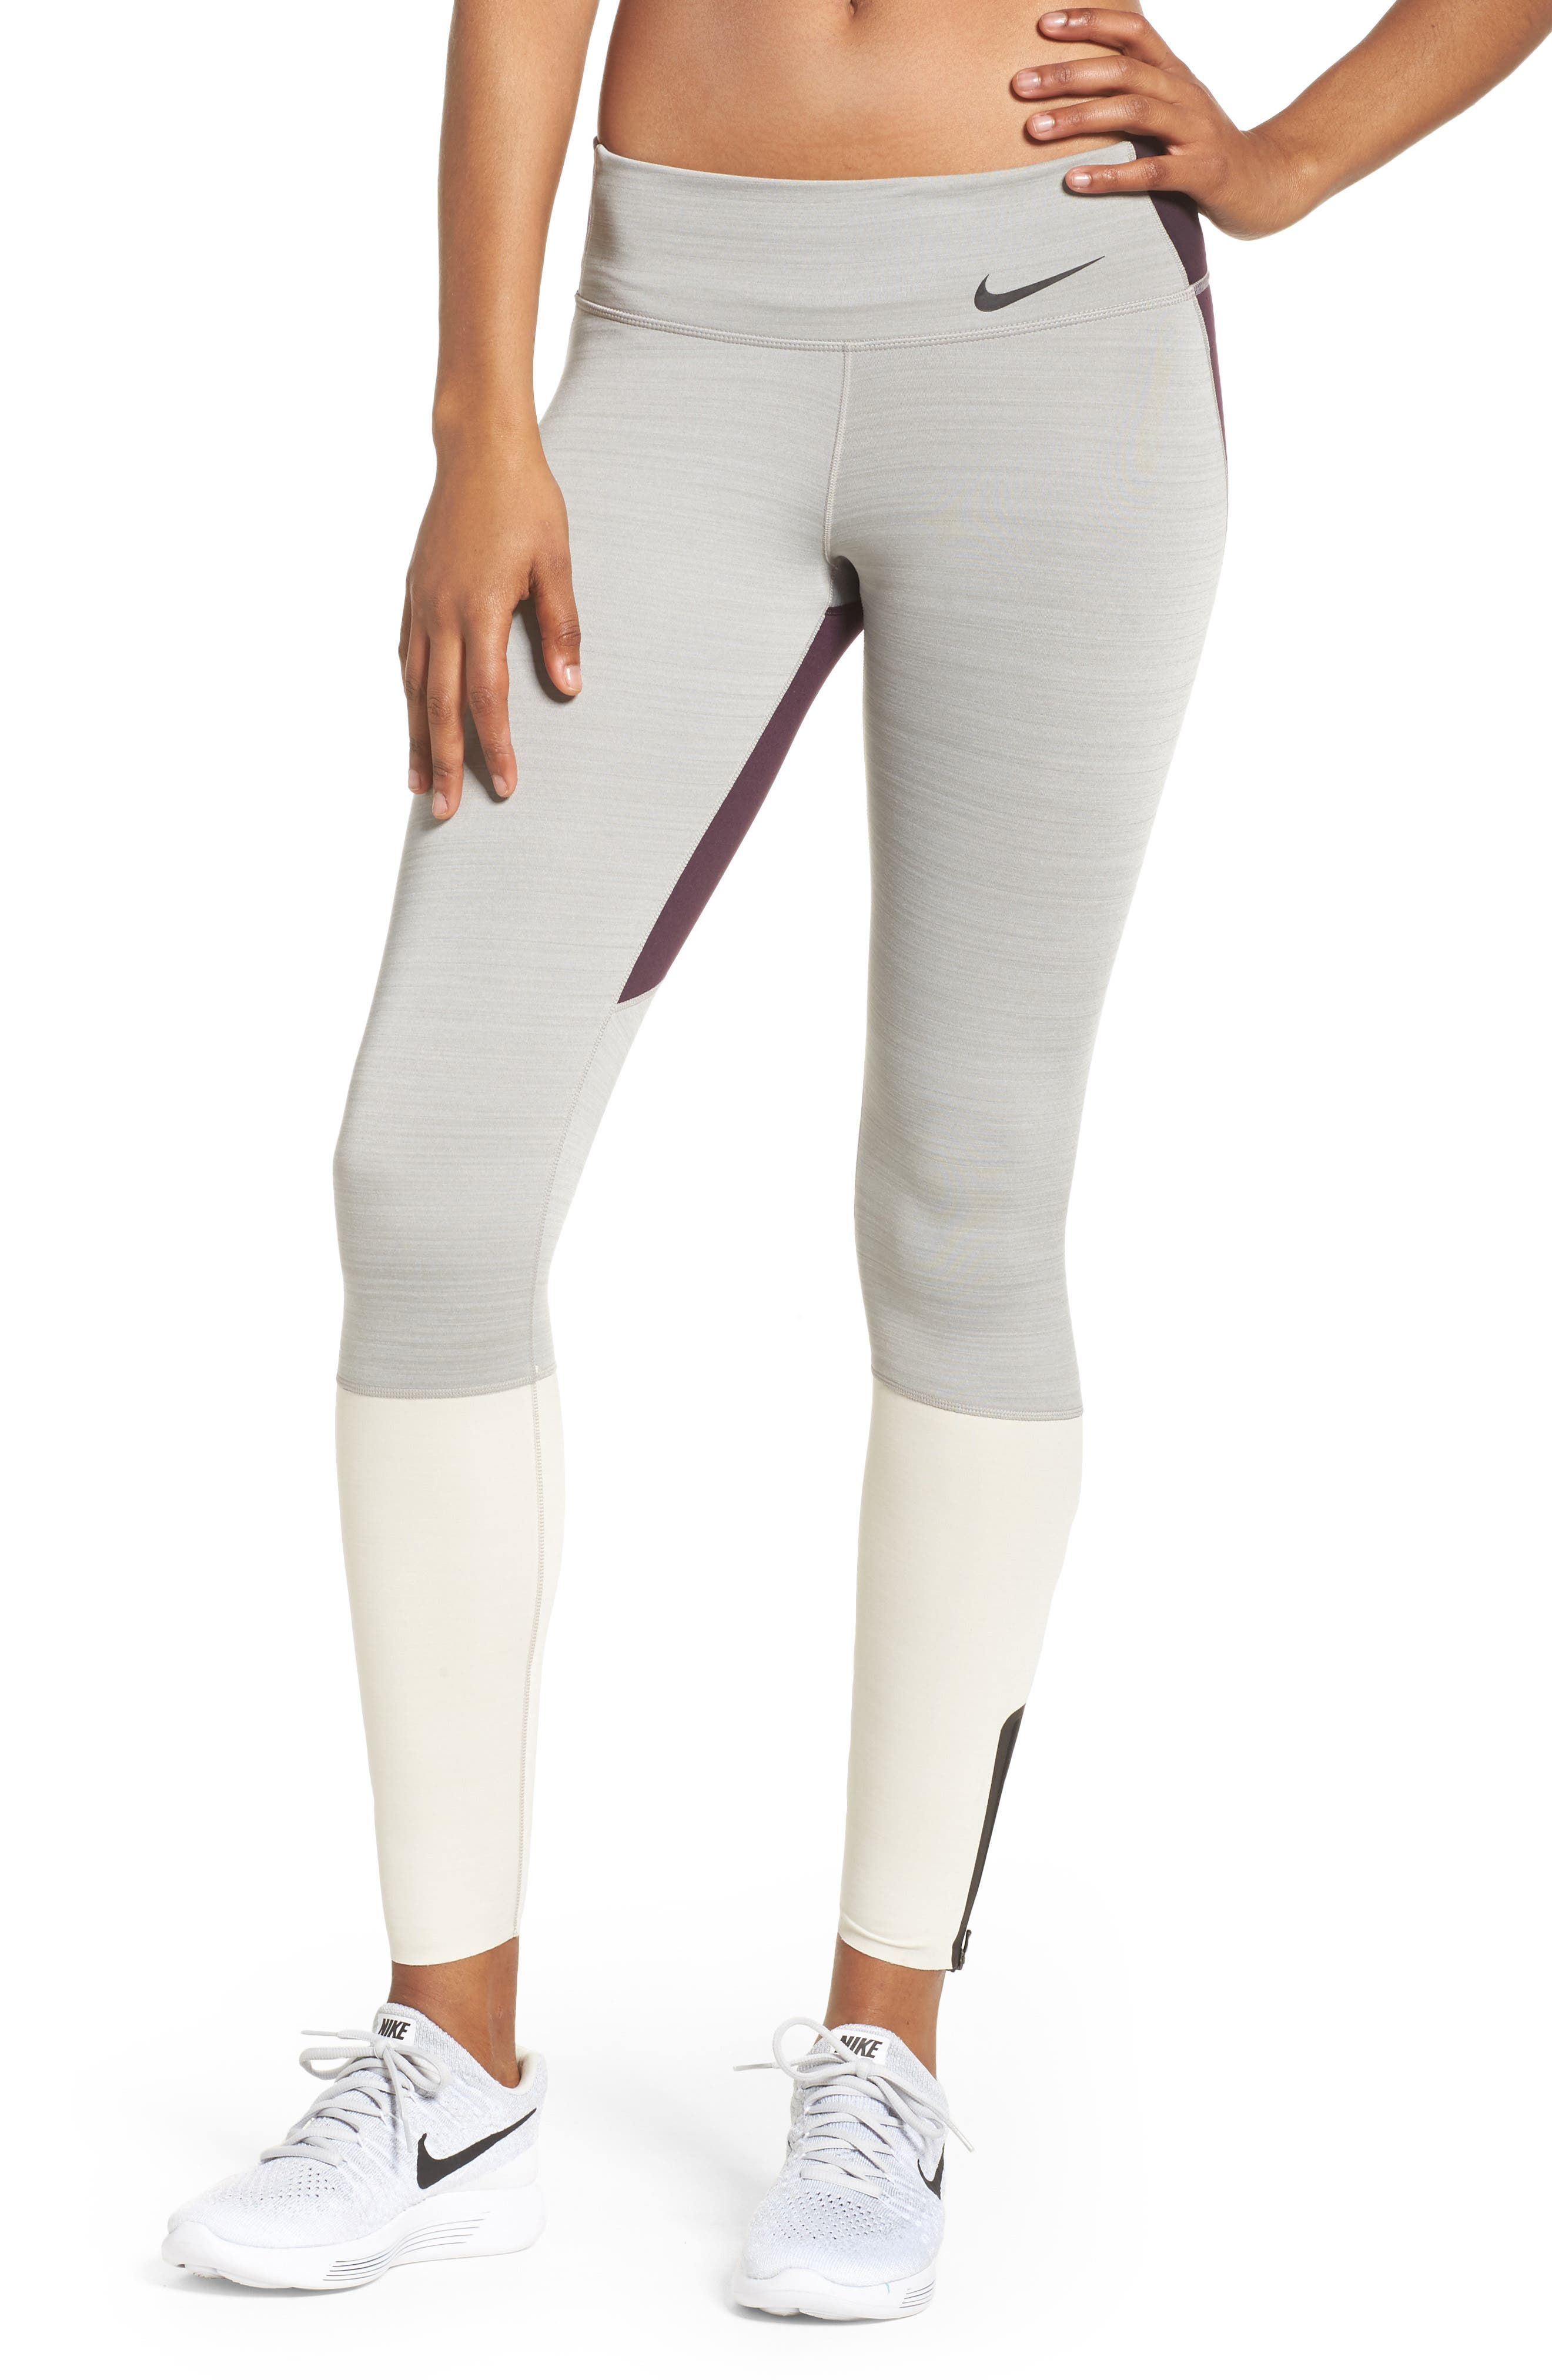 Nike Legendary Mid Rise Zip Cuff Training Tights